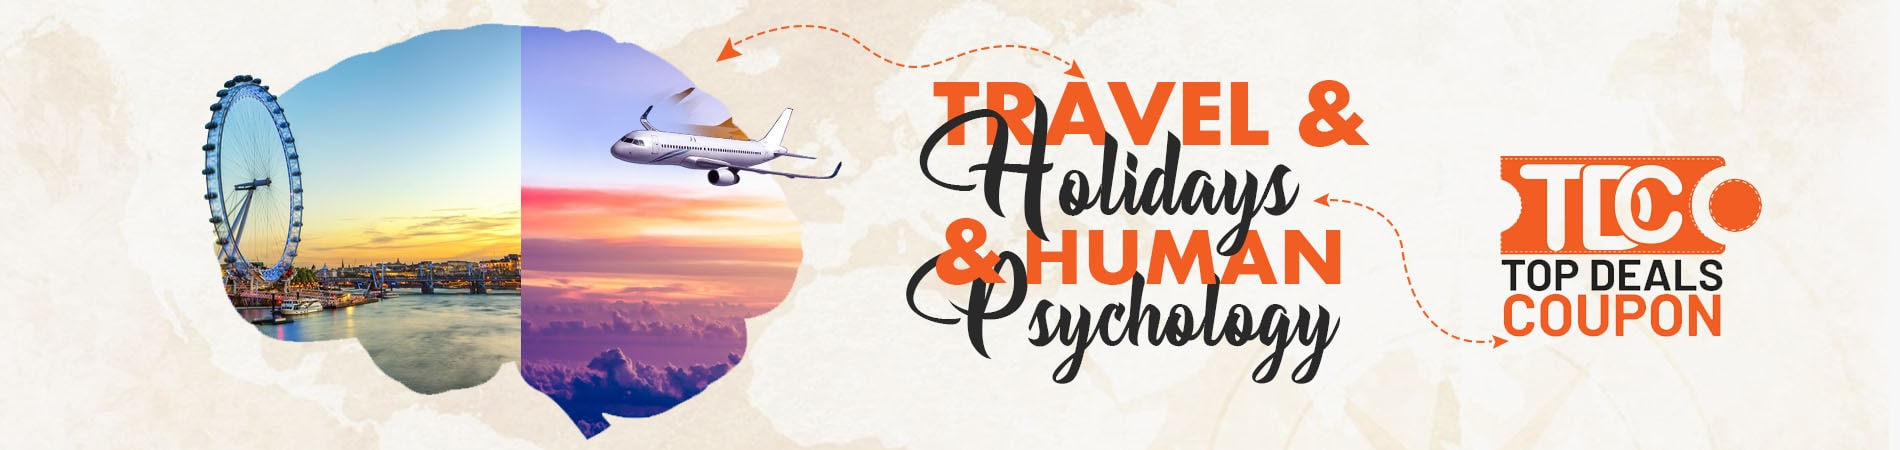 Travel and Holidays and Human Psychology Blog Banner Topdealscoupon